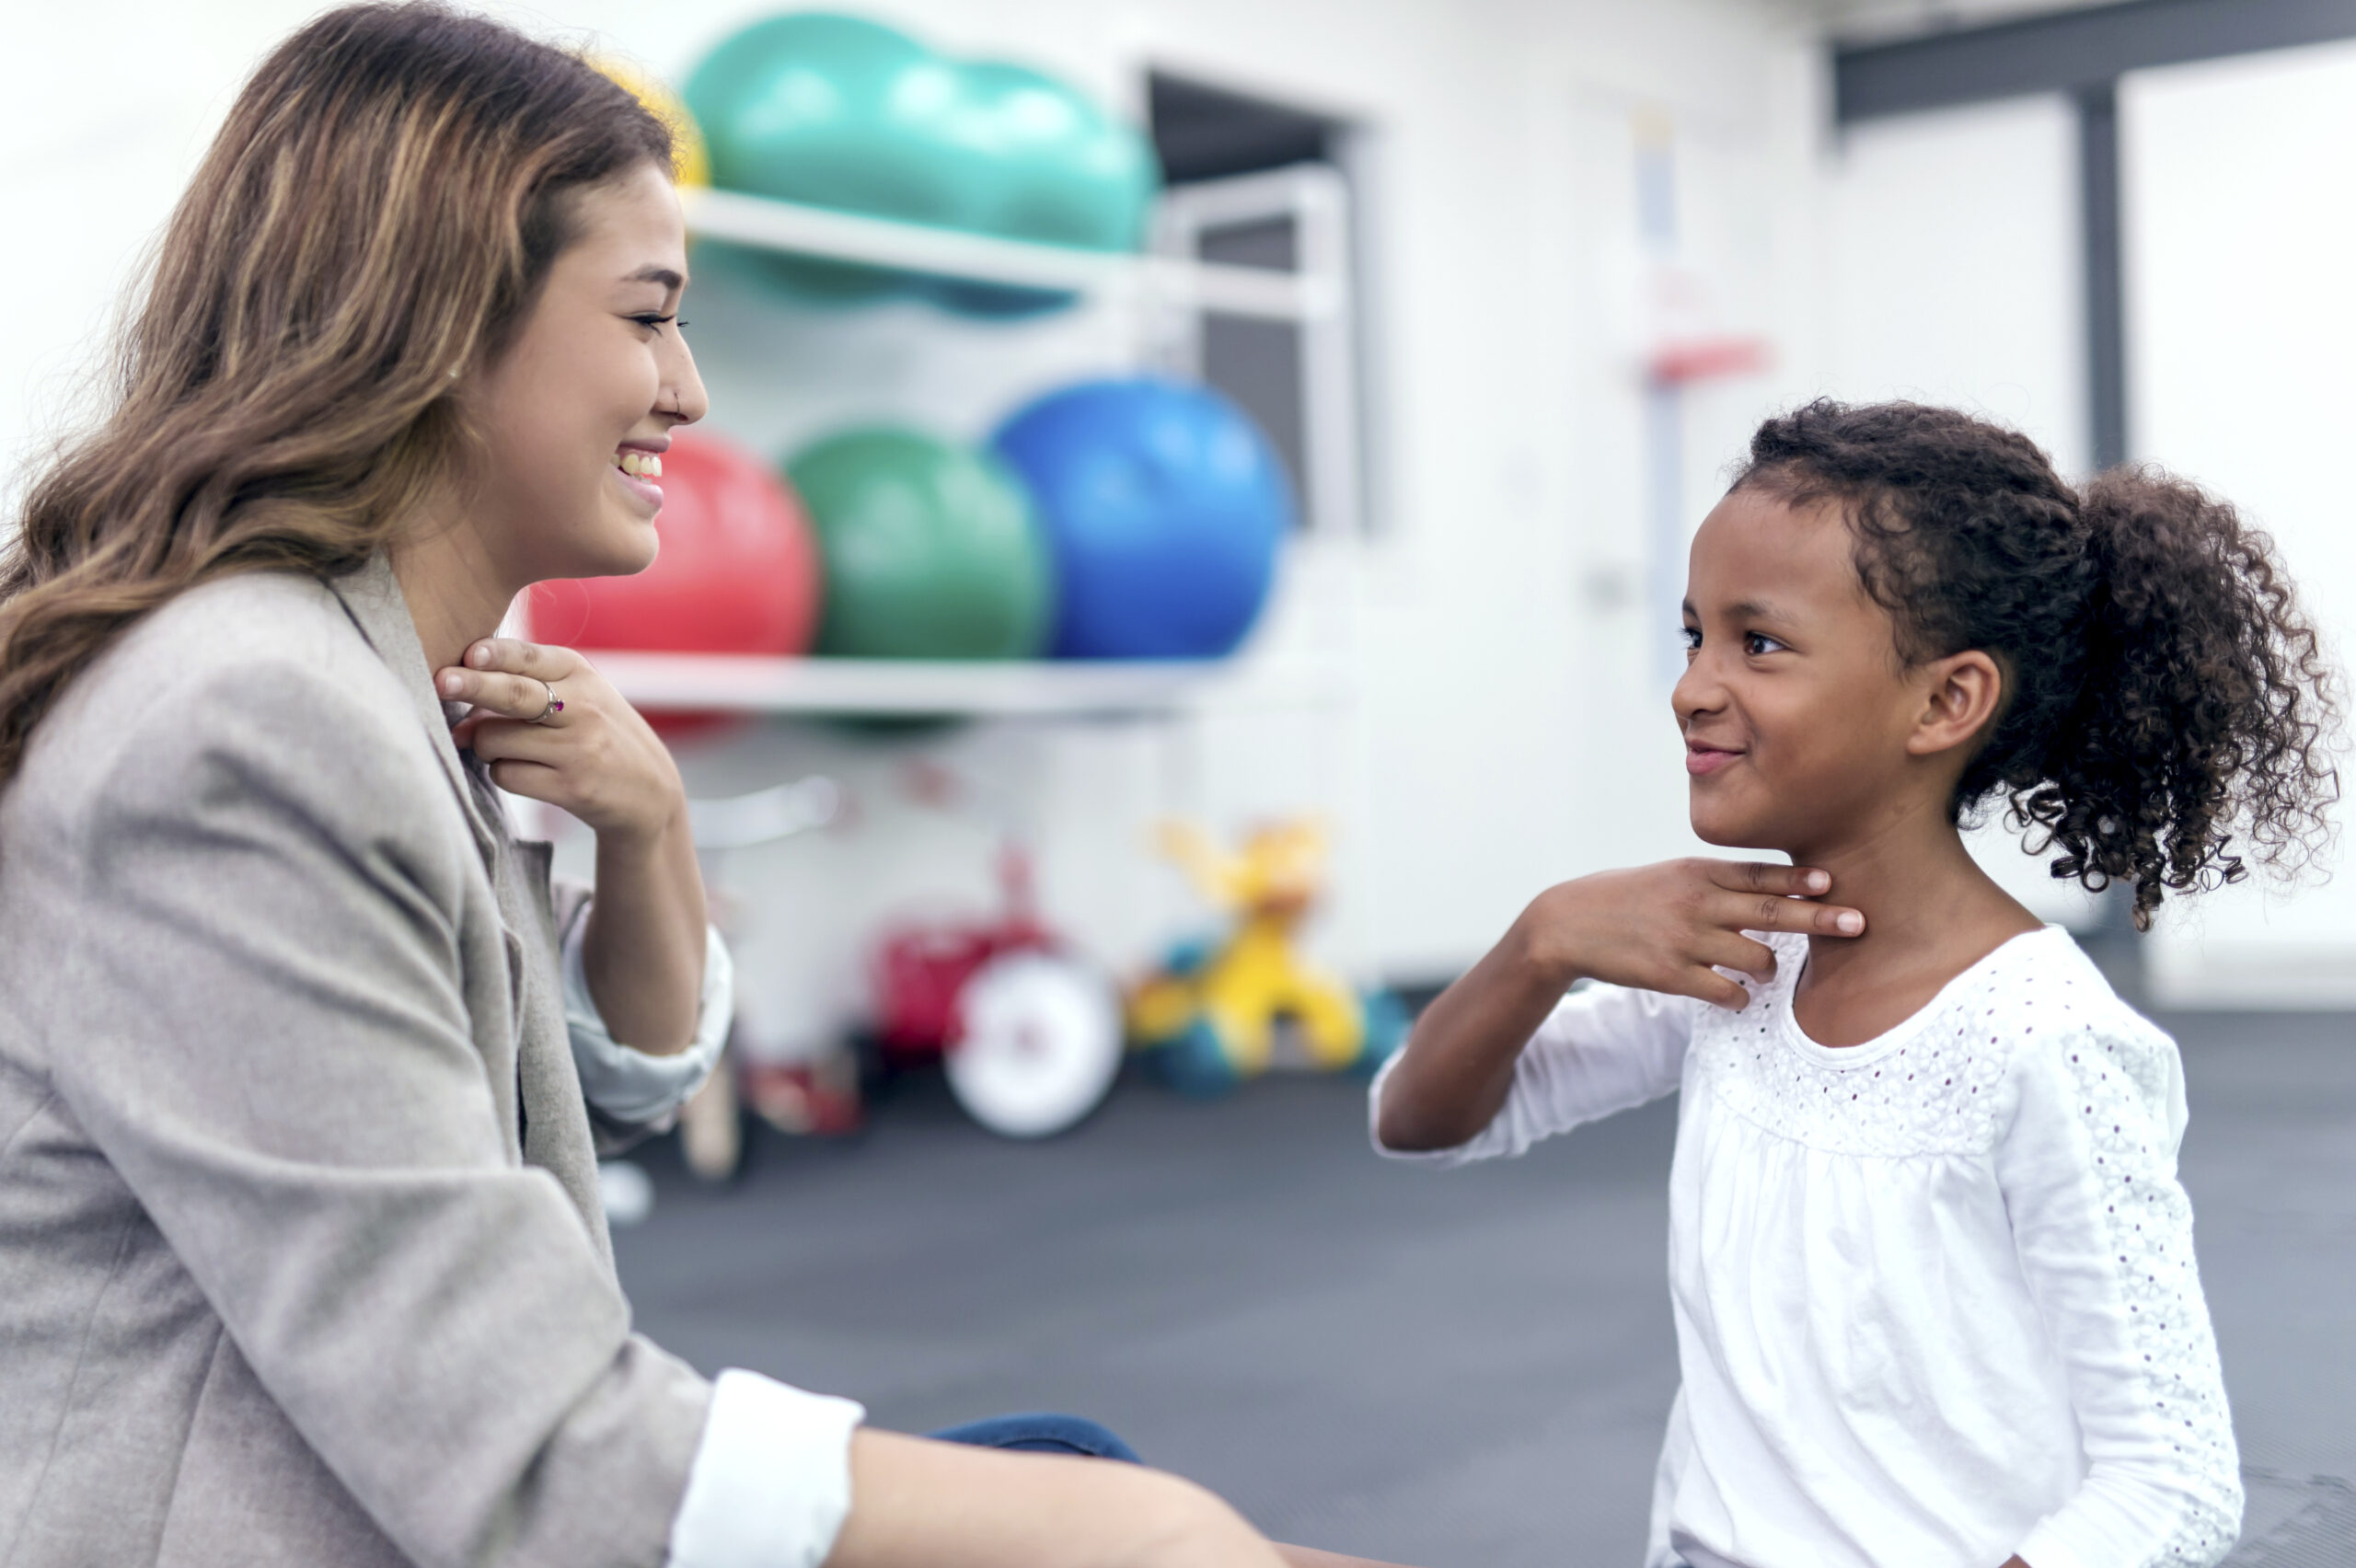 Female therapist helping girl in speech therapy exercise